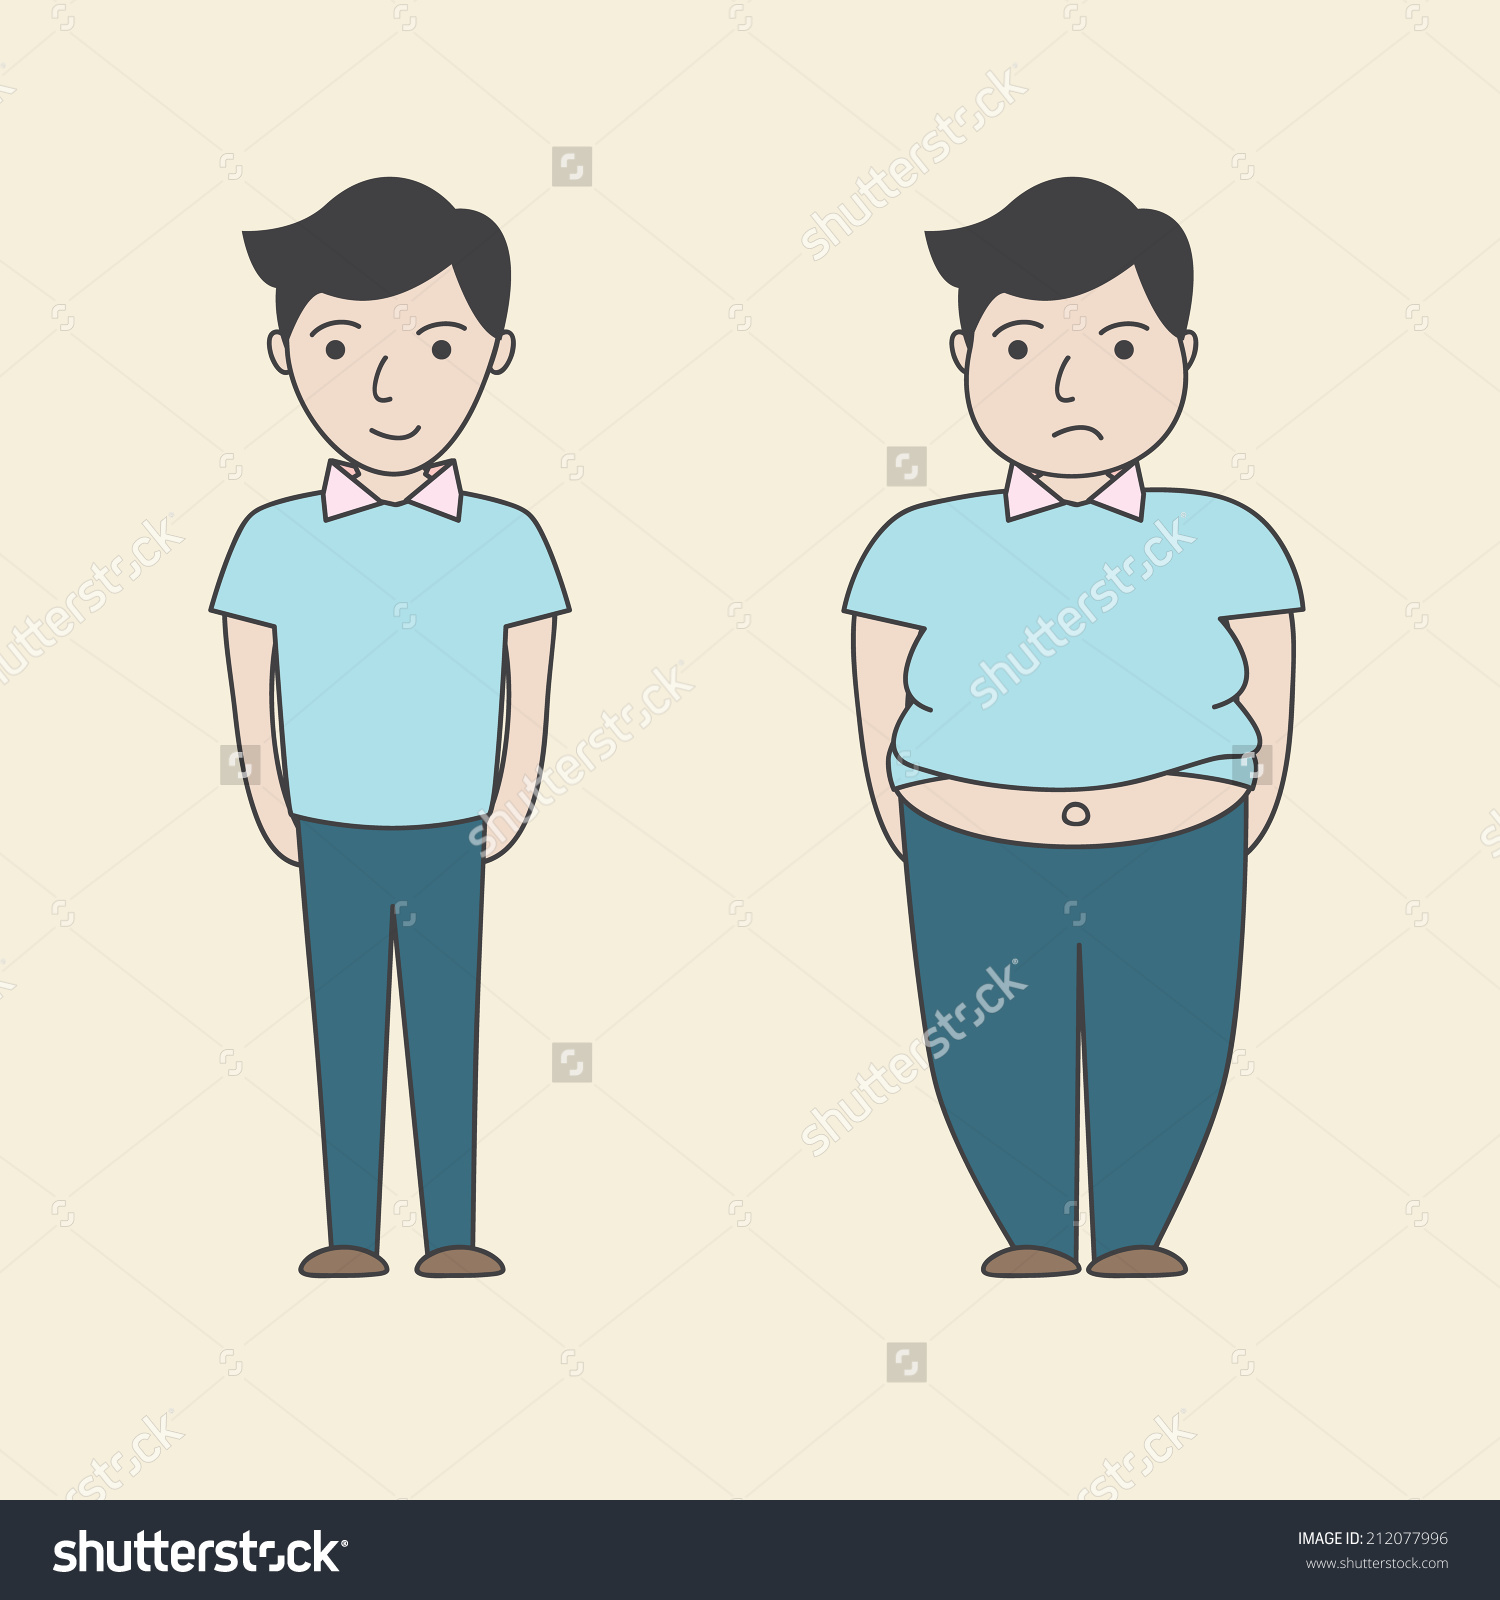 Fat and thin clipart jpg royalty free Fat and thin clipart - ClipartFest jpg royalty free